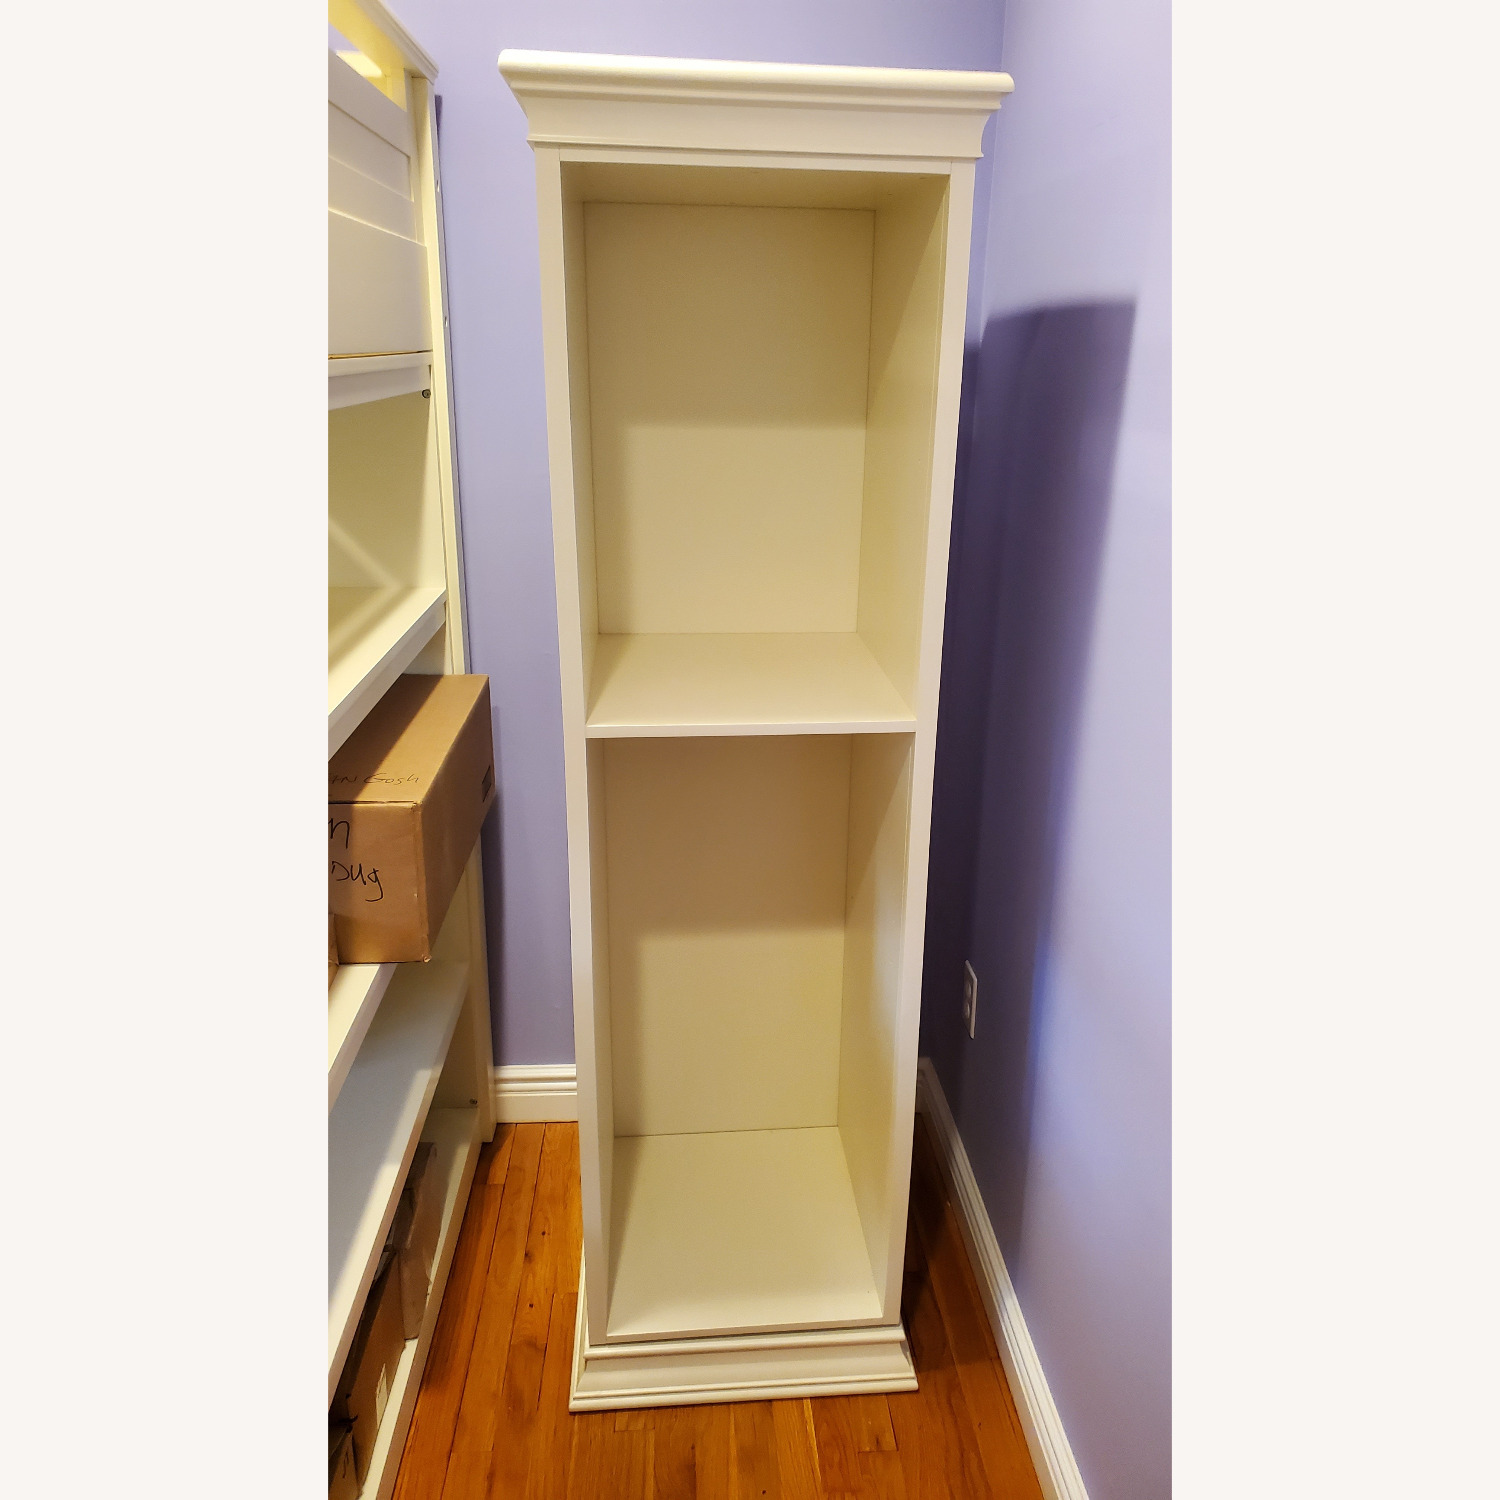 Pottery Barn Display-It Rotating Bookcase w/Mirror - image-6